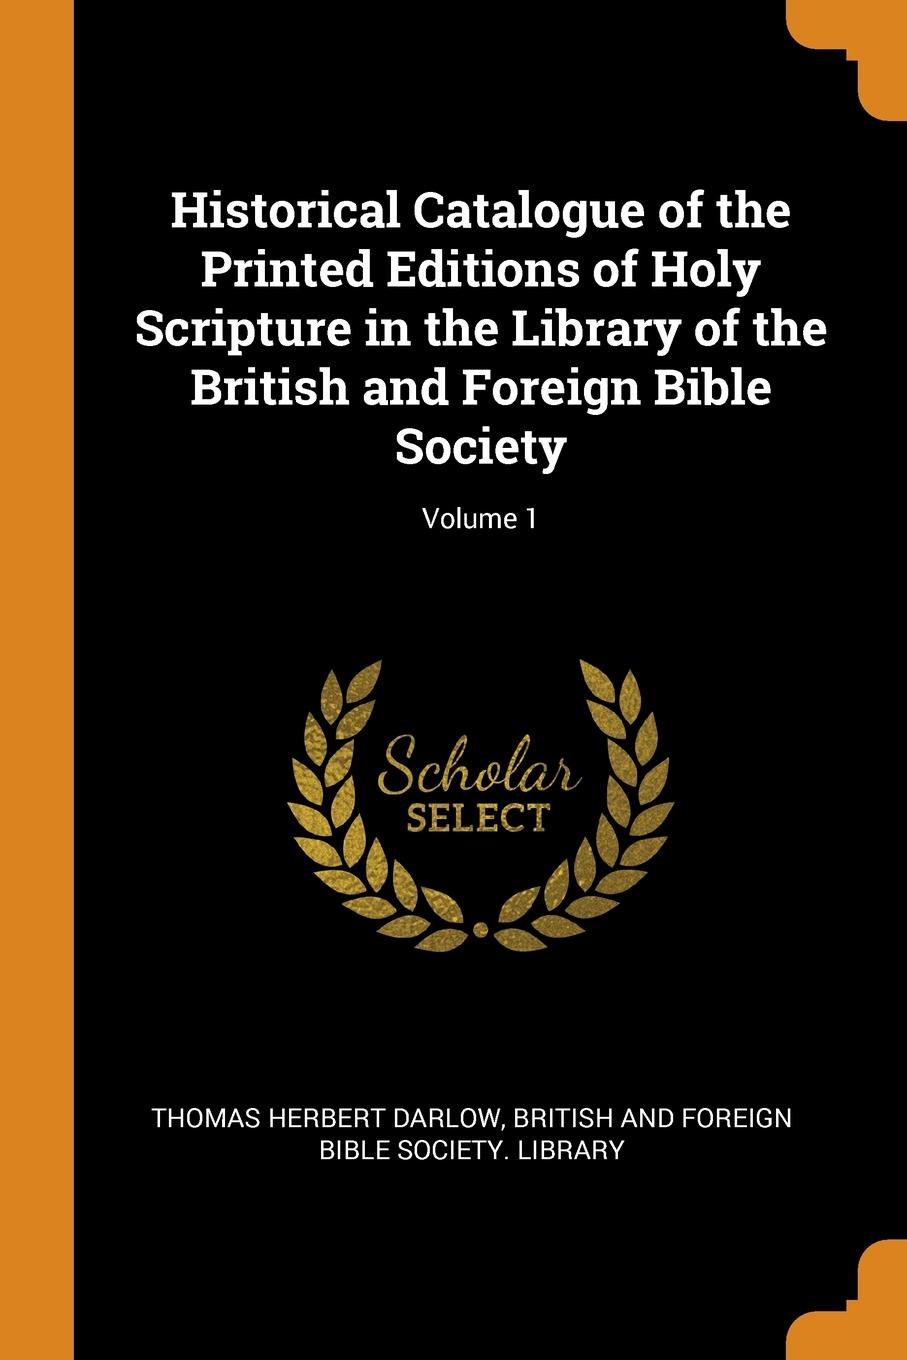 Historical Catalogue of the Printed Editions of Holy Scripture in the Library of the British and Foreign Bible Society; Volume 1. Thomas Herbert Darlow